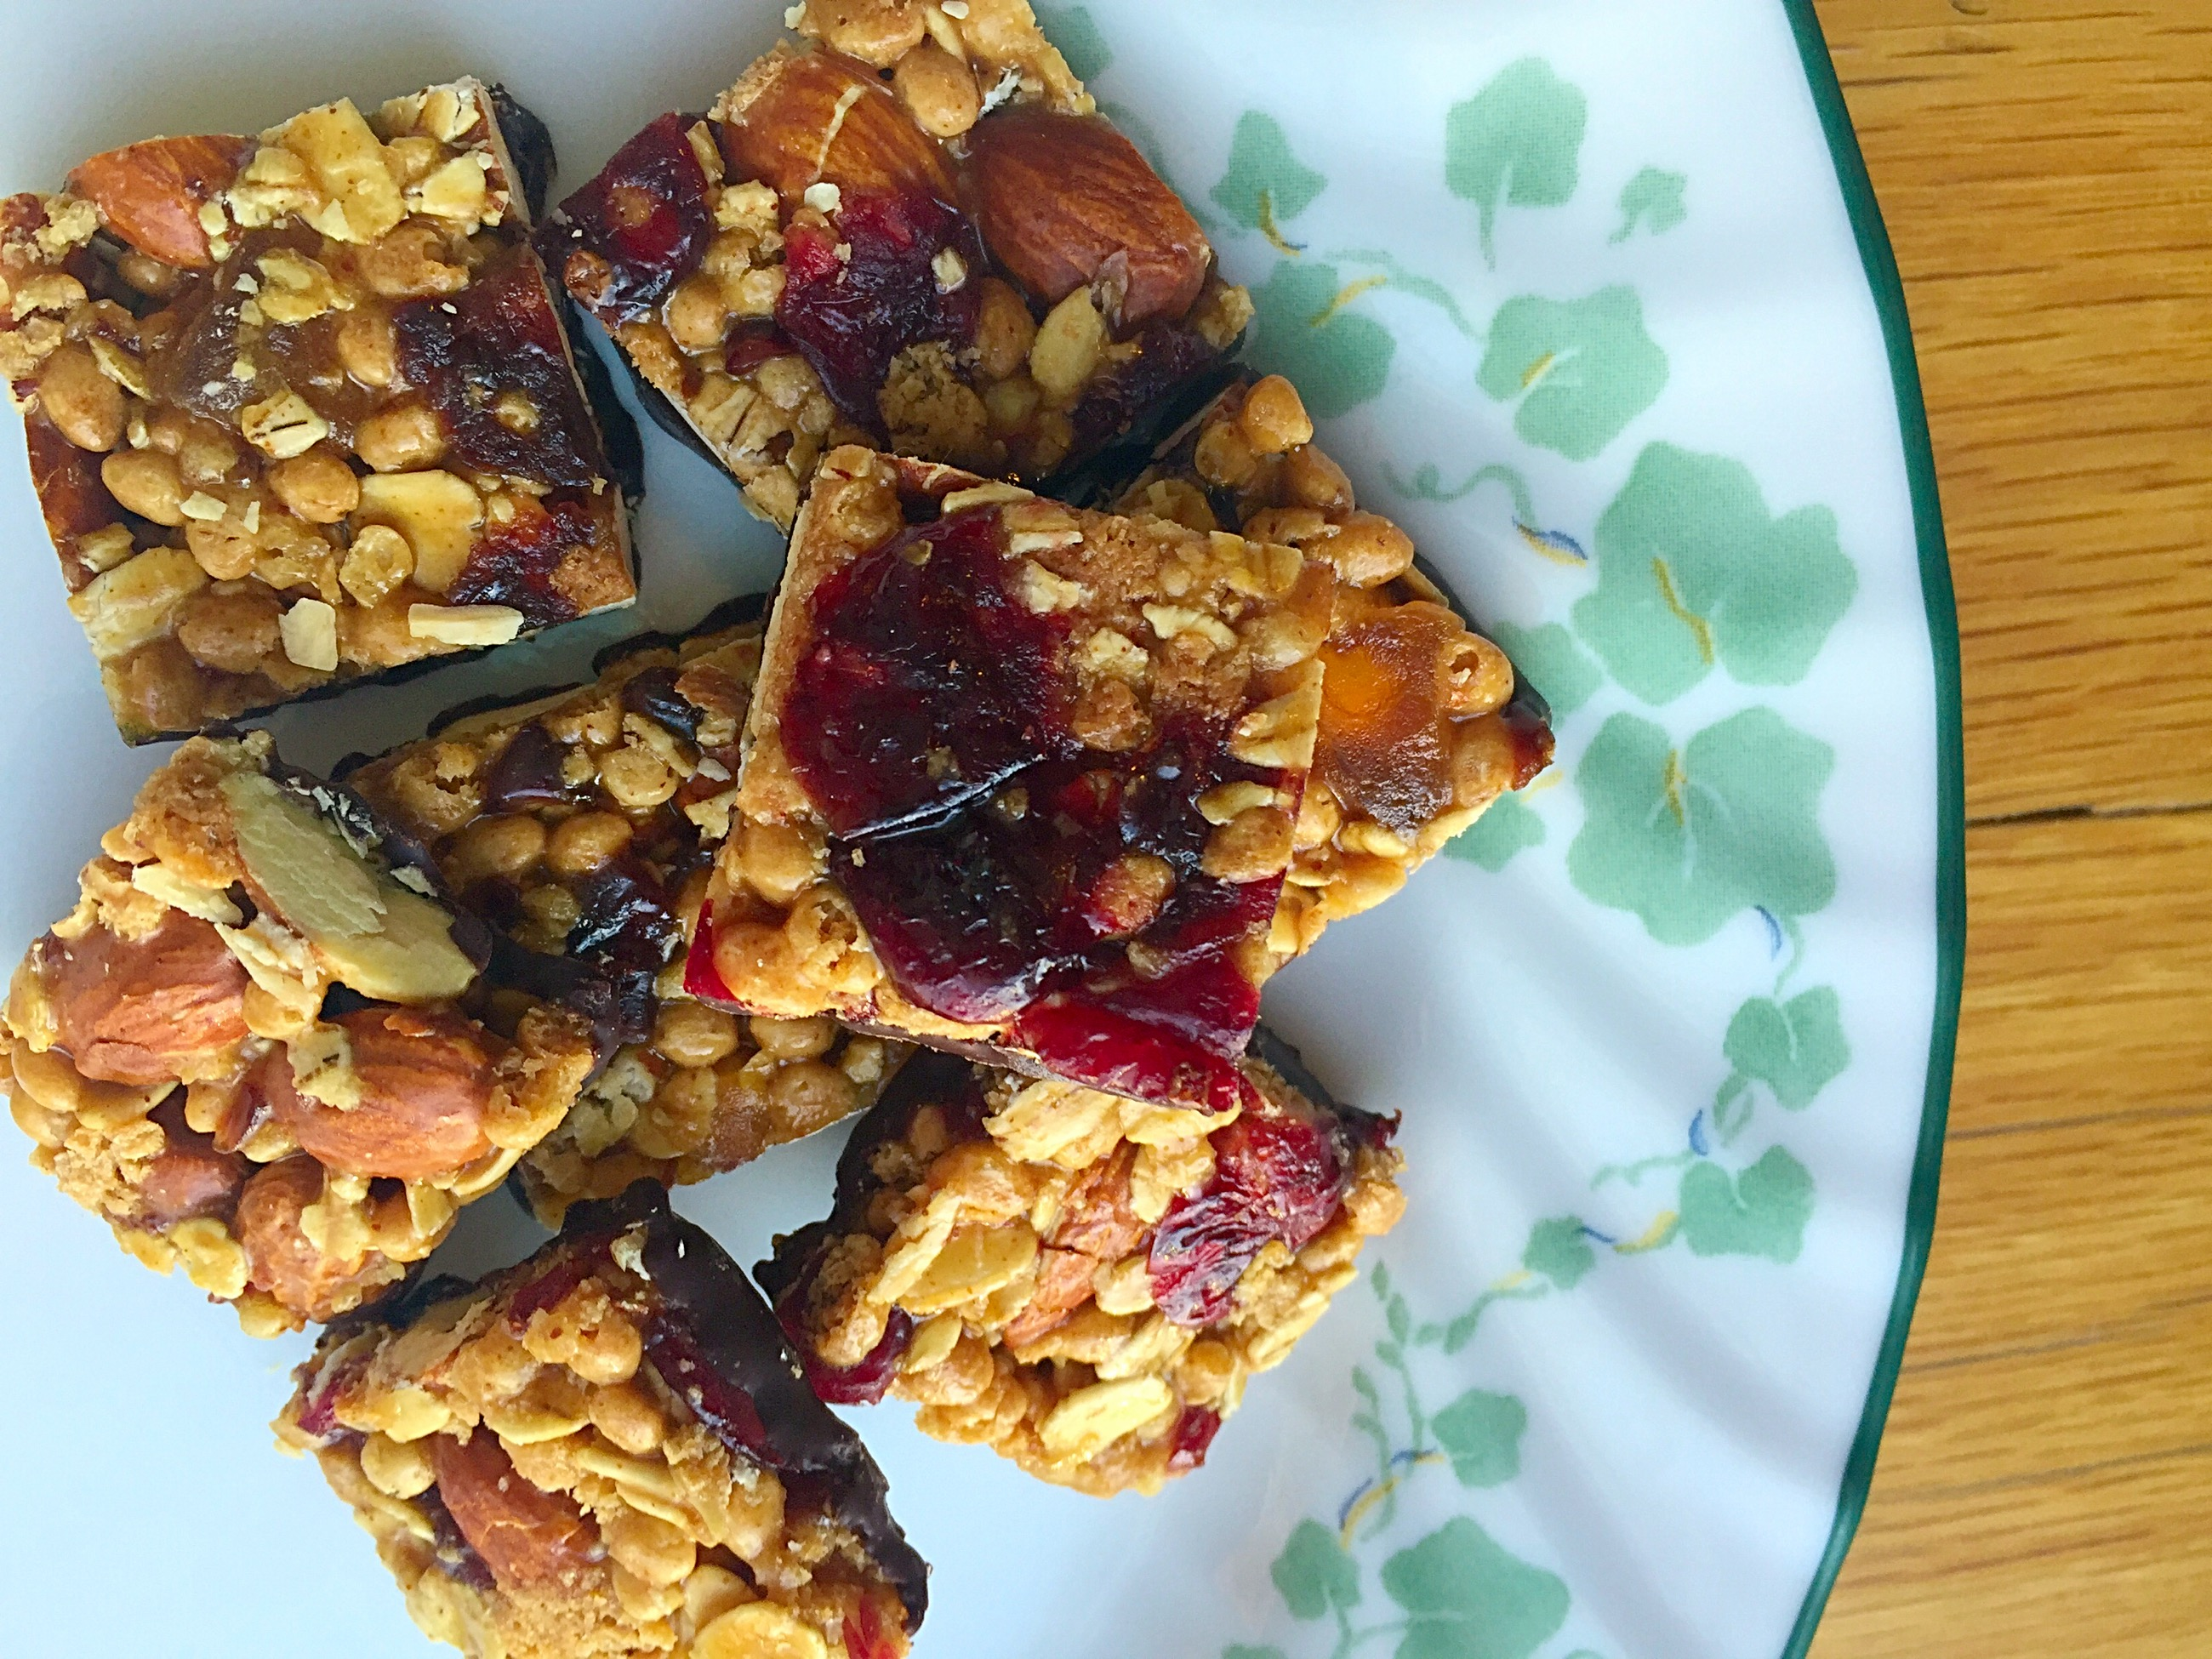 @gksnacksquares #tryalittlegoodness with these goodnessknows snack squares! #sponsored #ad